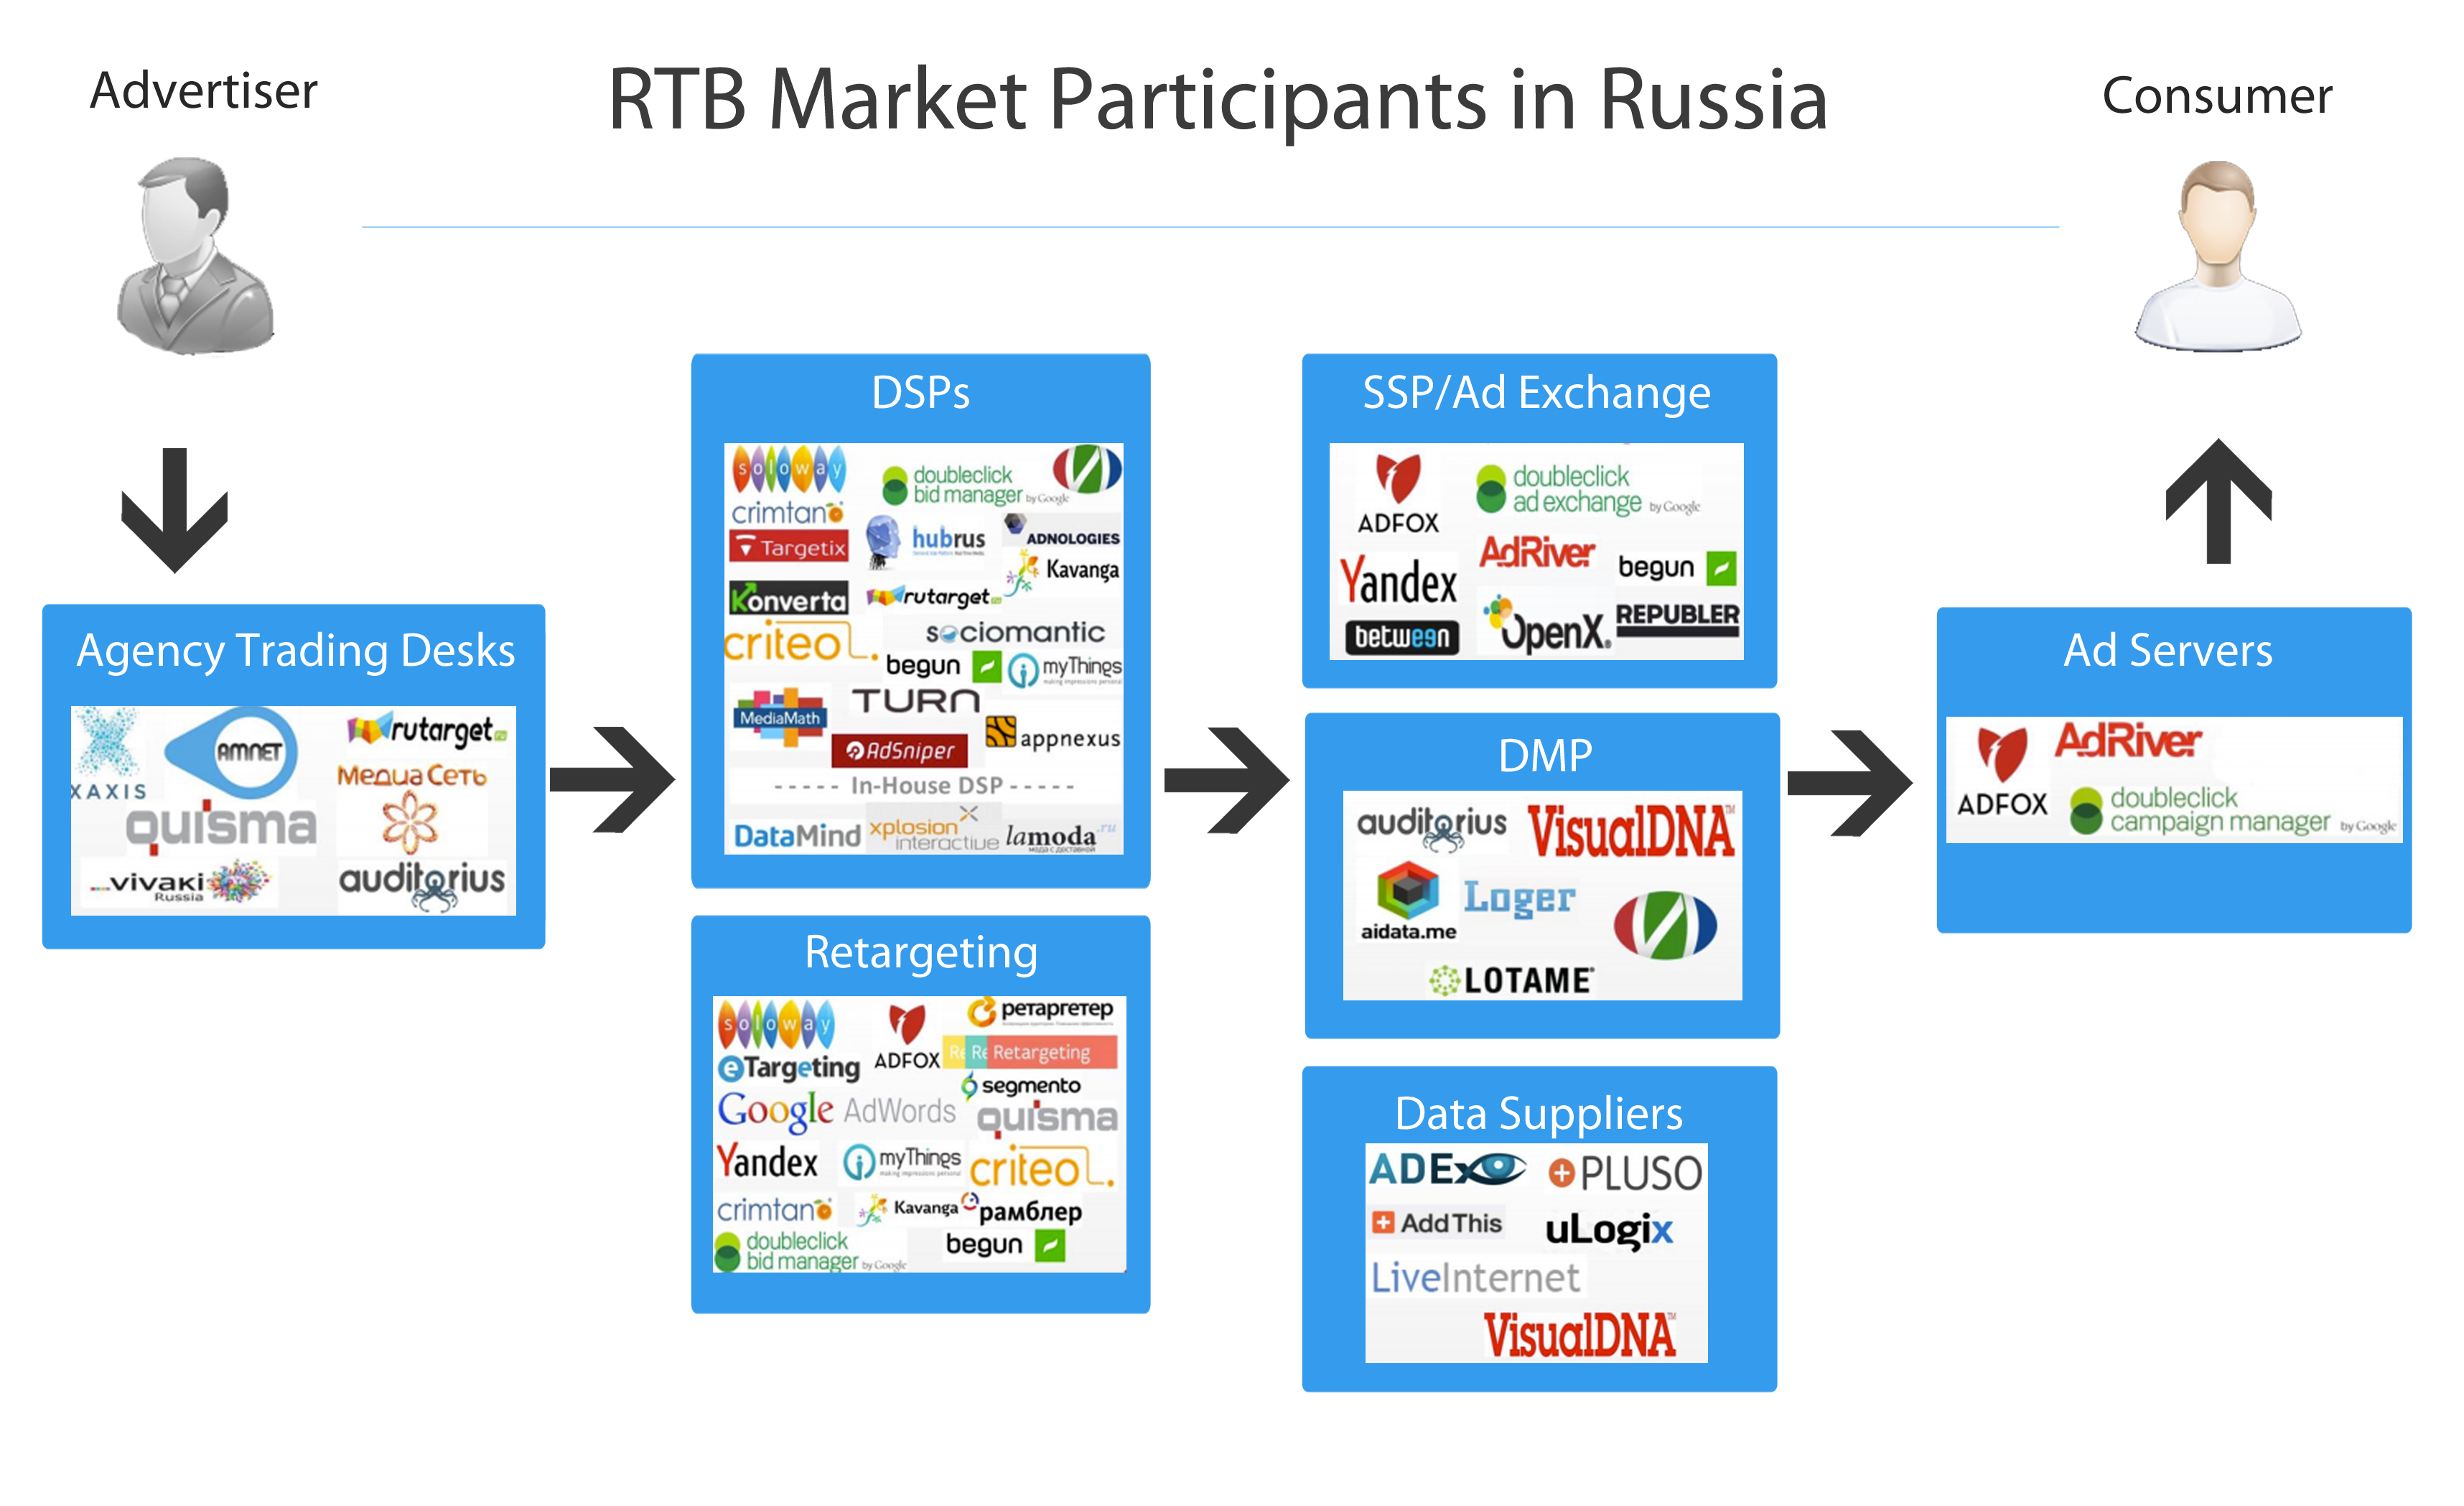 RTB Market Participants Real Time Bidding ecosystem in Russia